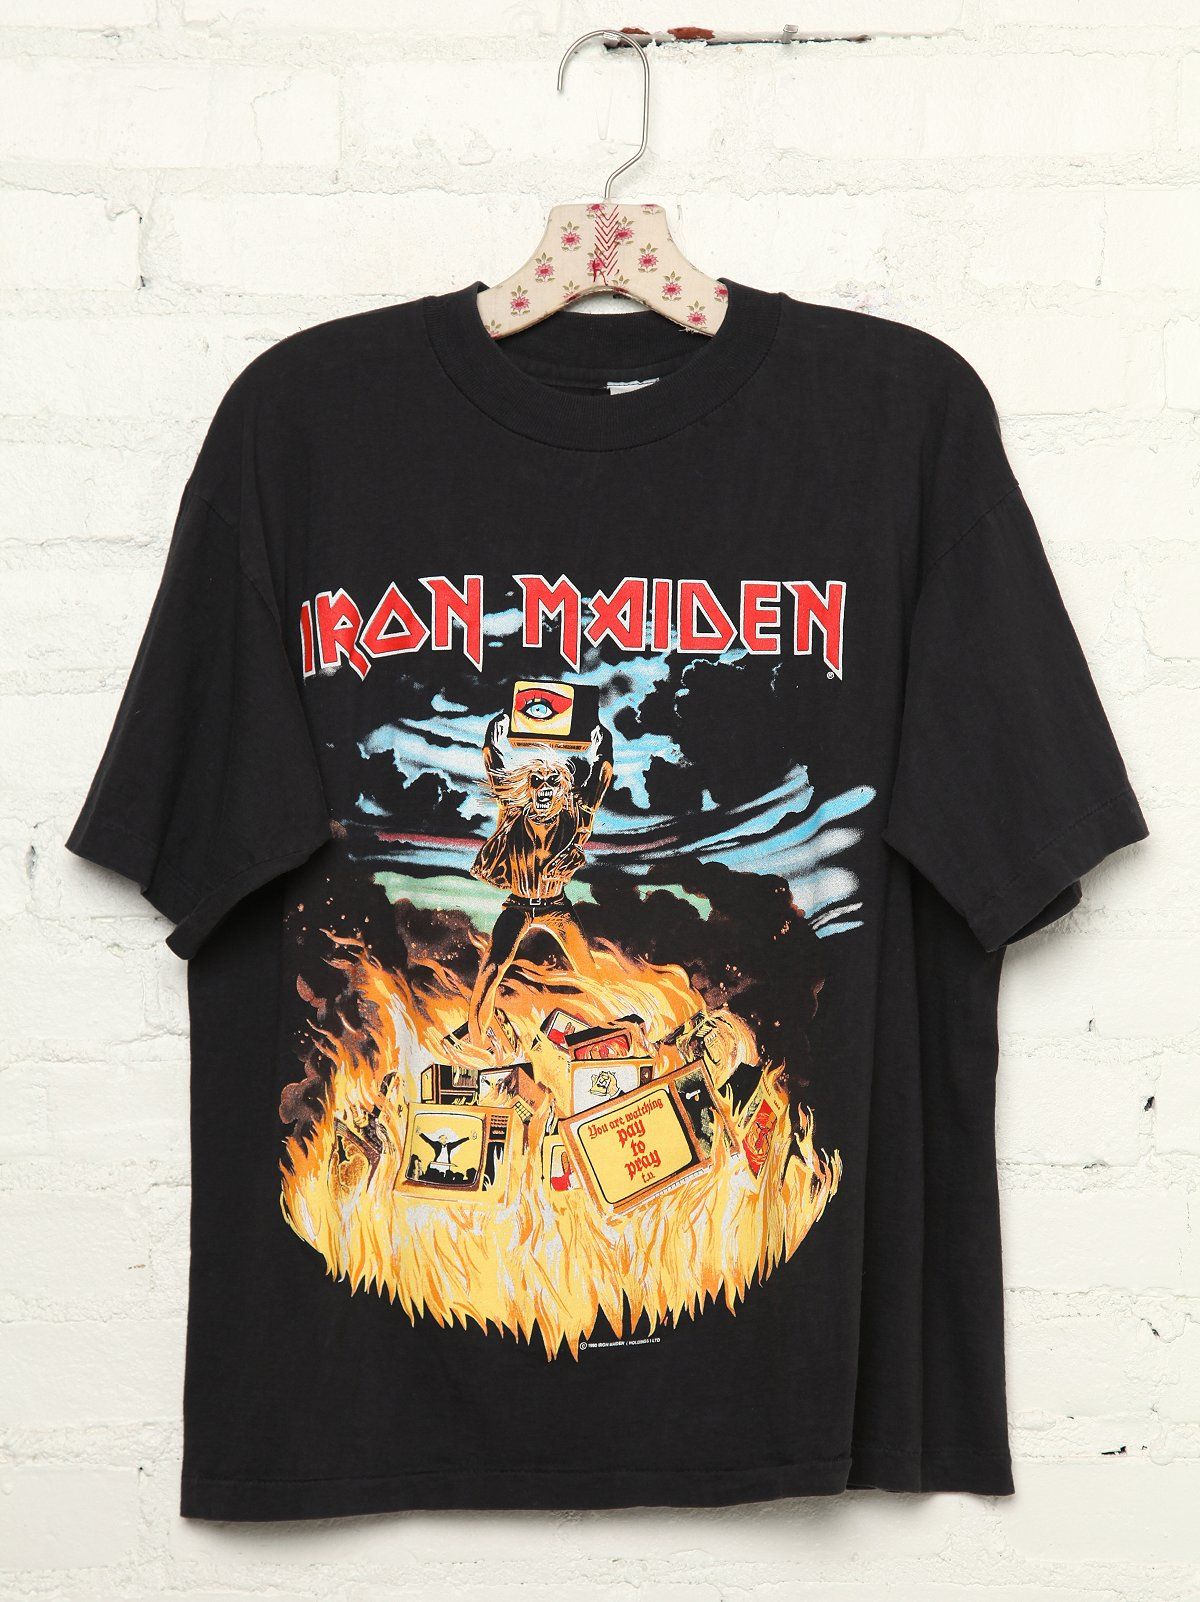 Vintage Iron Maiden Rock Tee